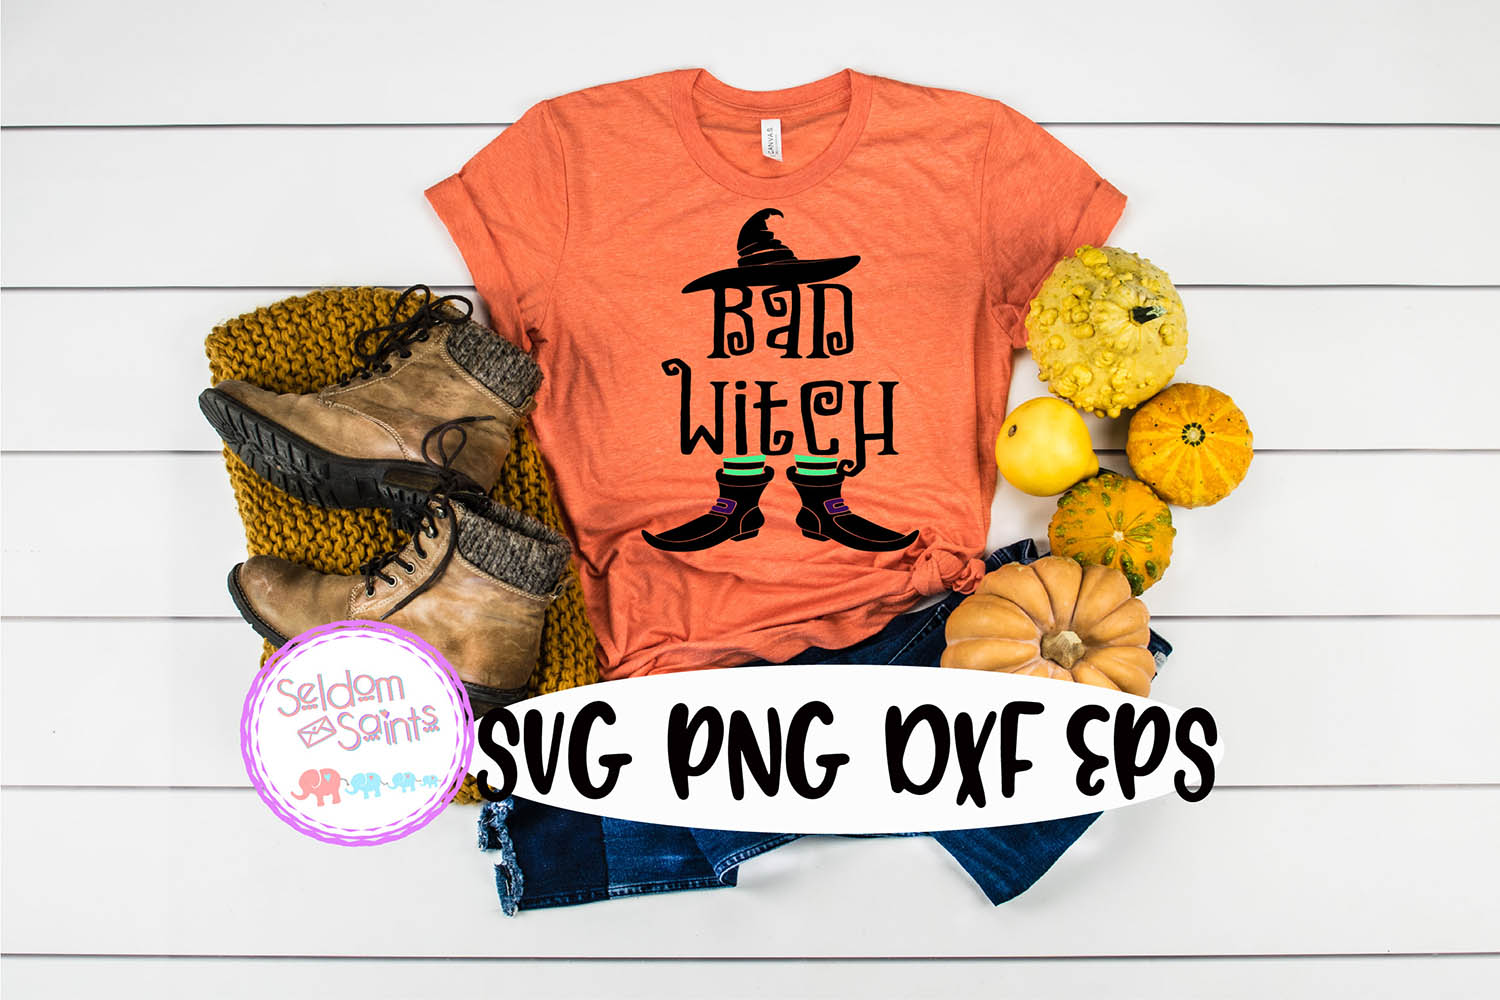 Bad Witch SVG PNG DXF EPS Cricut Cut File example image 1